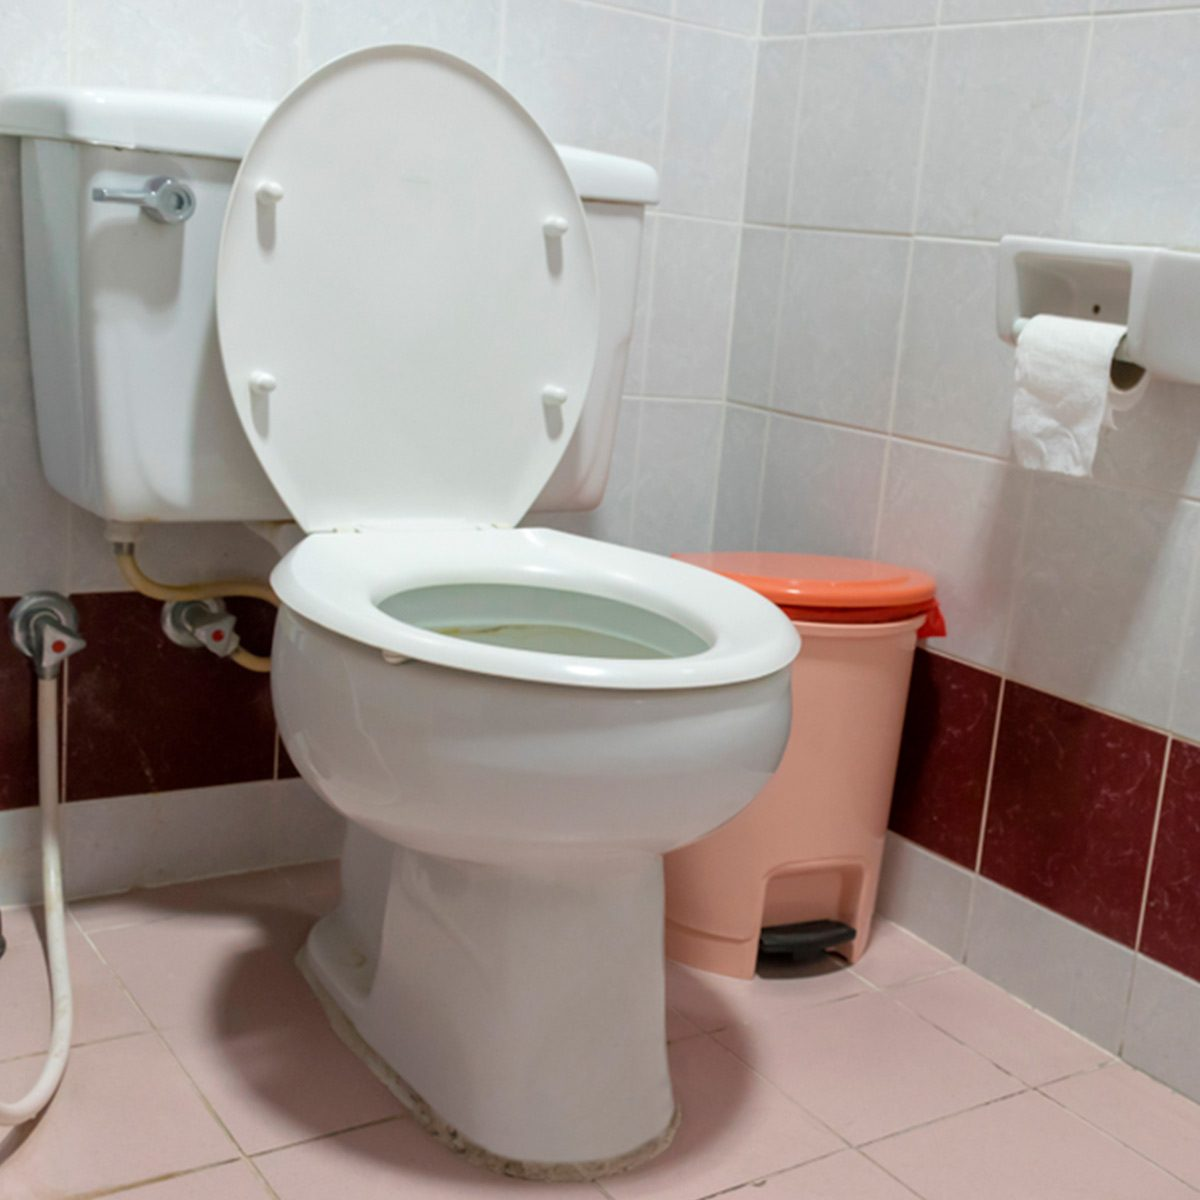 Surprising Always Close The Toilet Lid When You Flush Heres Why Onthecornerstone Fun Painted Chair Ideas Images Onthecornerstoneorg